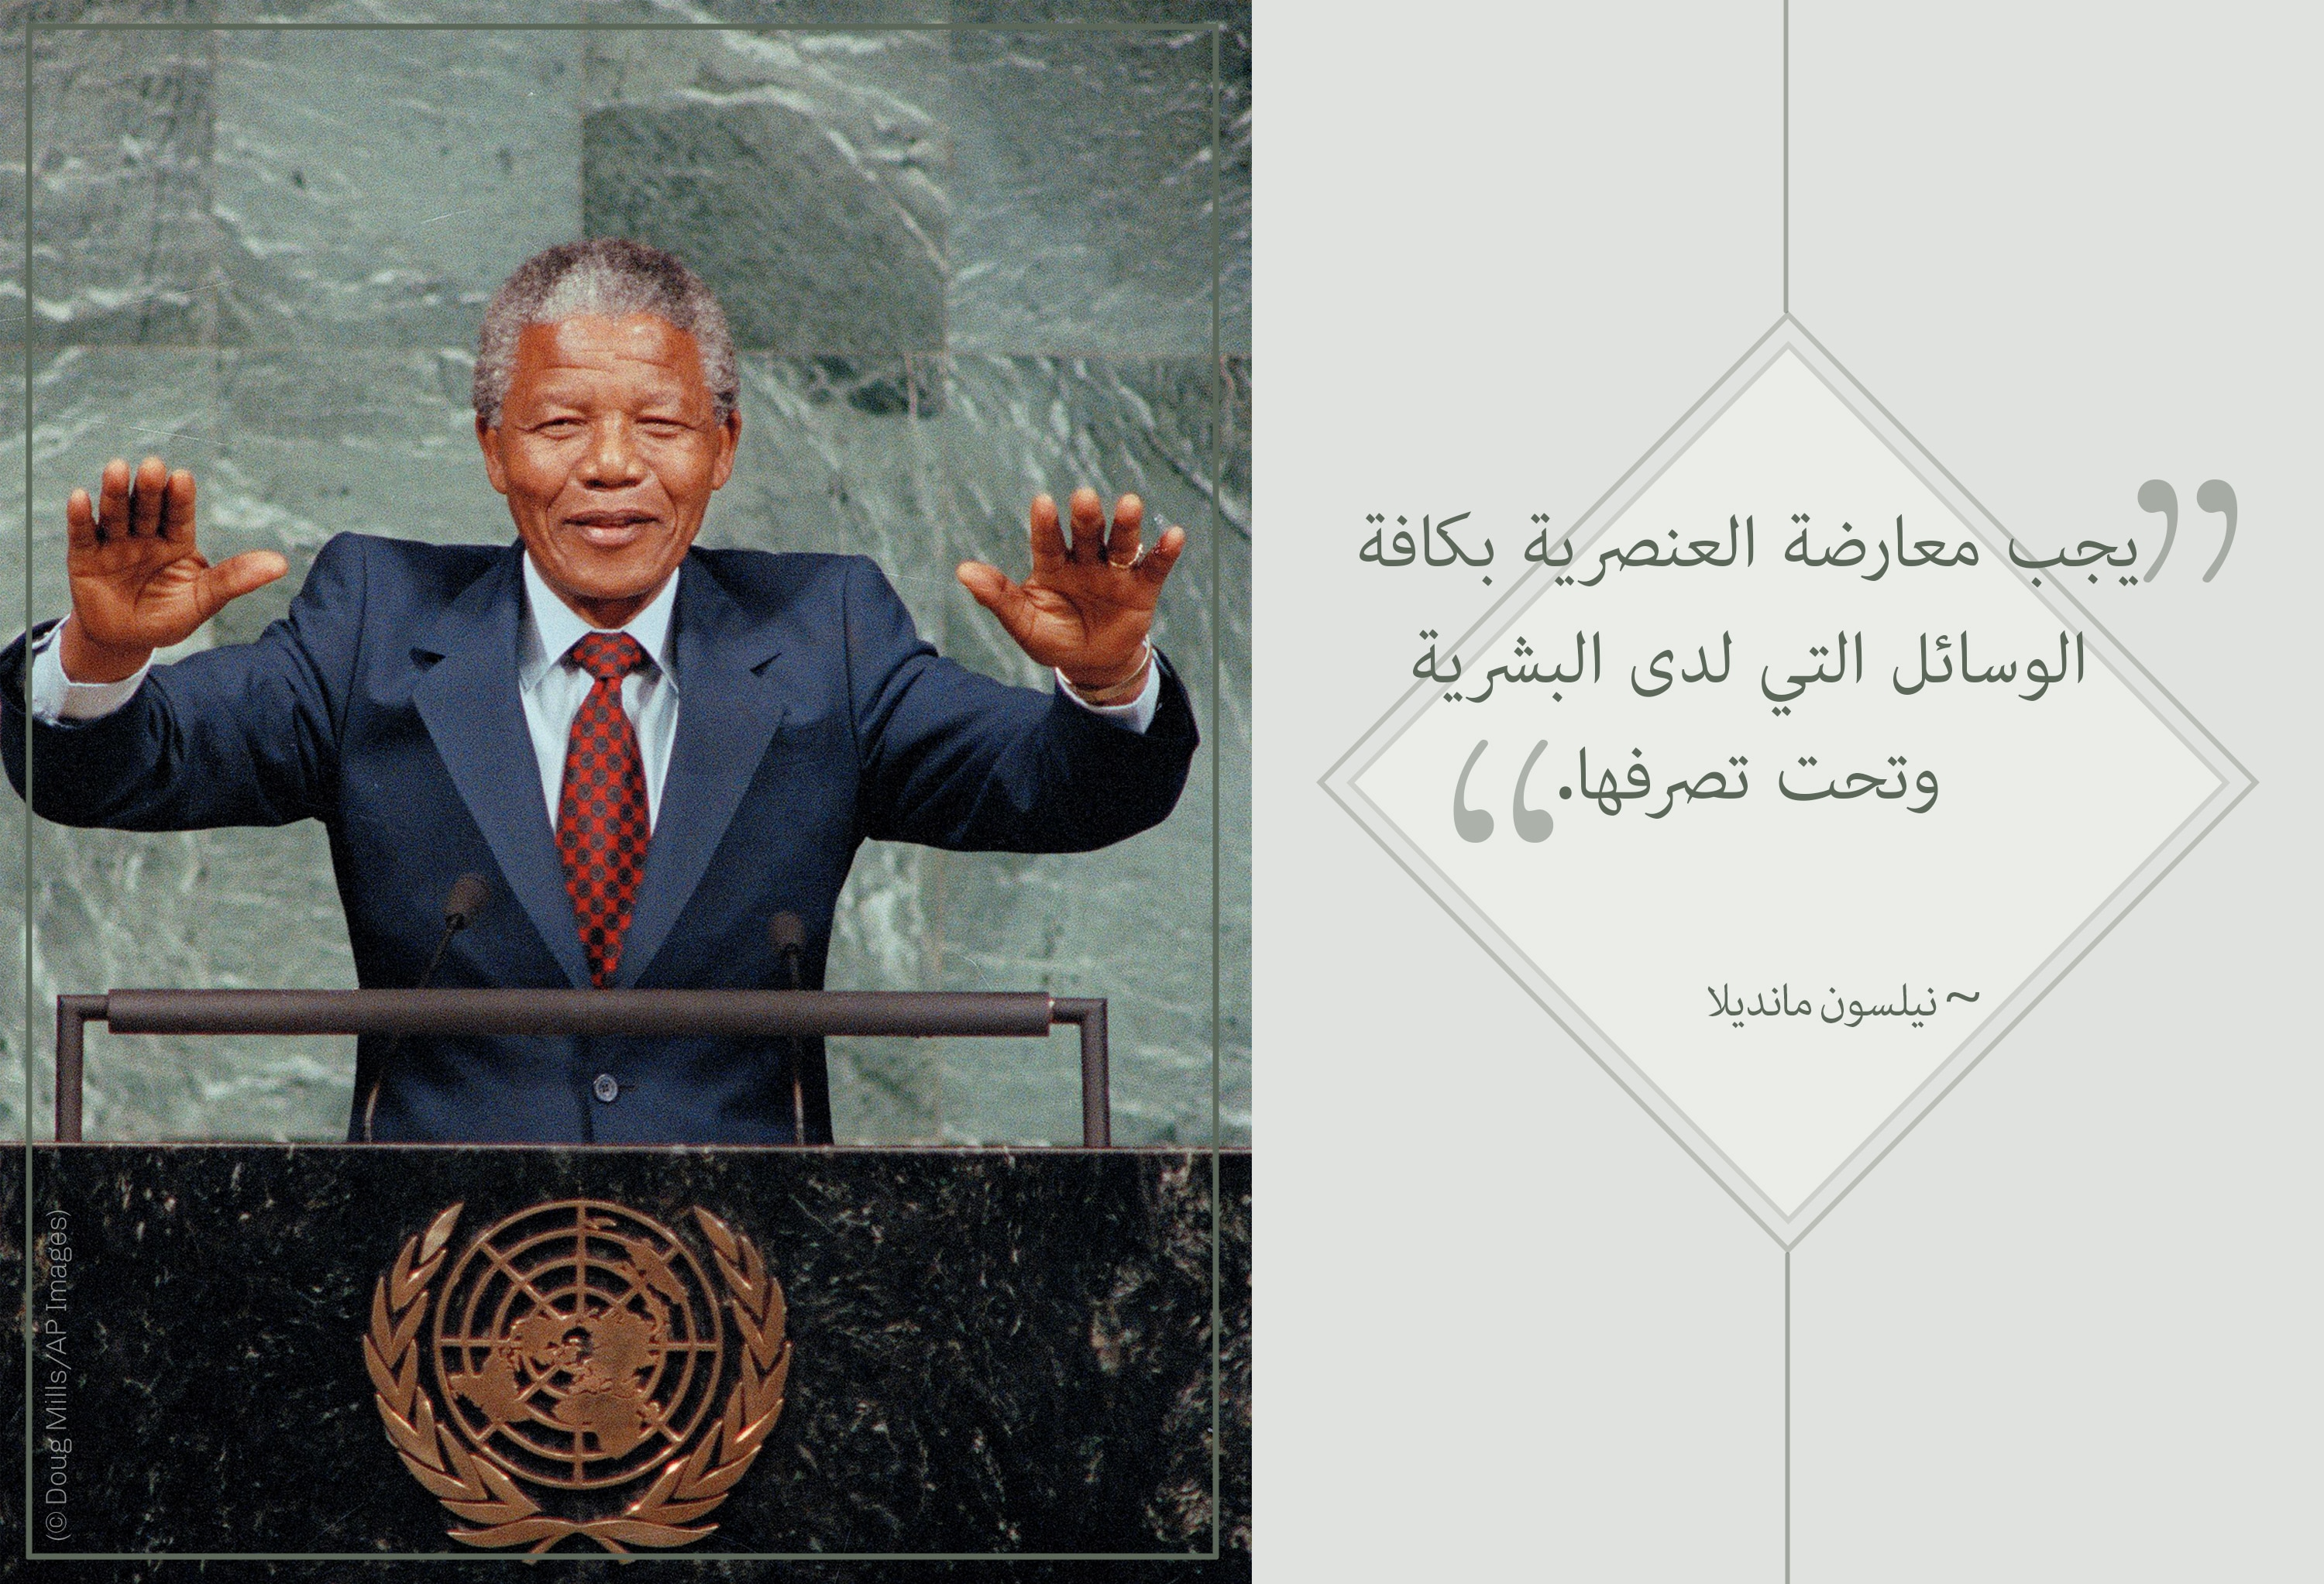 Photo of Mandela at lectern with upraised arms, Mandela quote about opposing racism (© Doug Mills/AP Images)